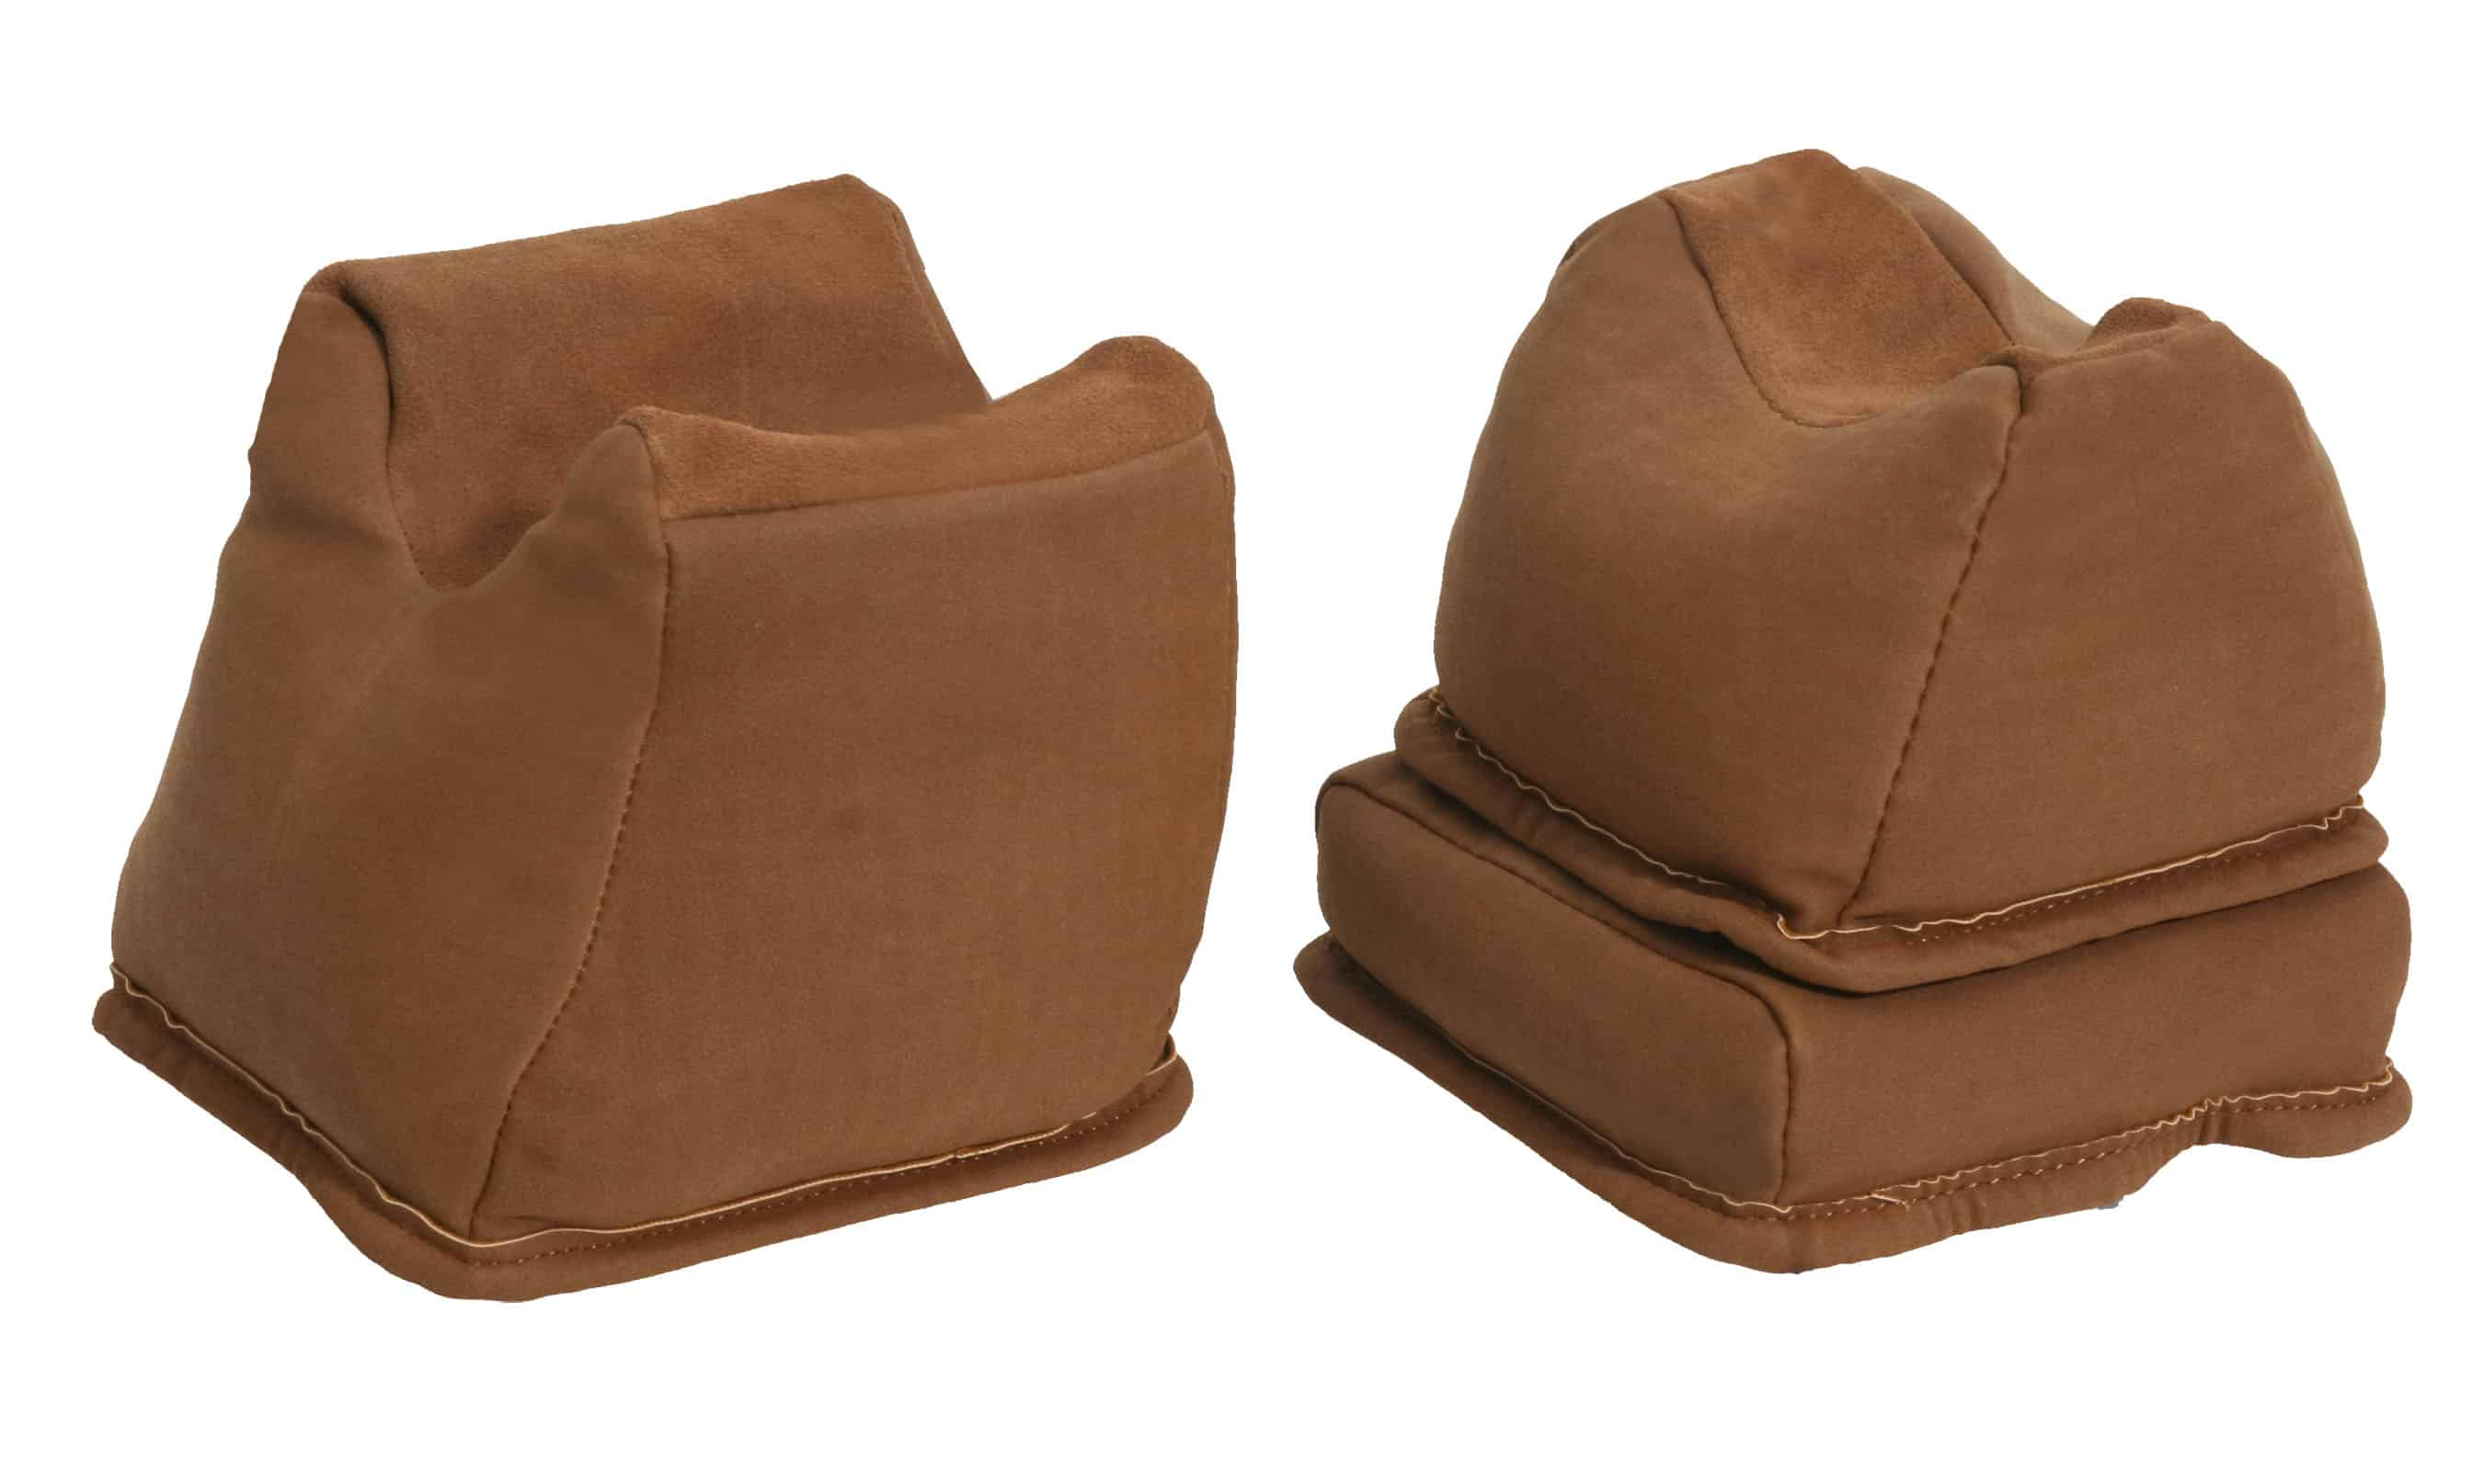 The Outdoor Connection NuBuc Suede Brown 3 Piece Bench Rest Bag Trio (Filled)